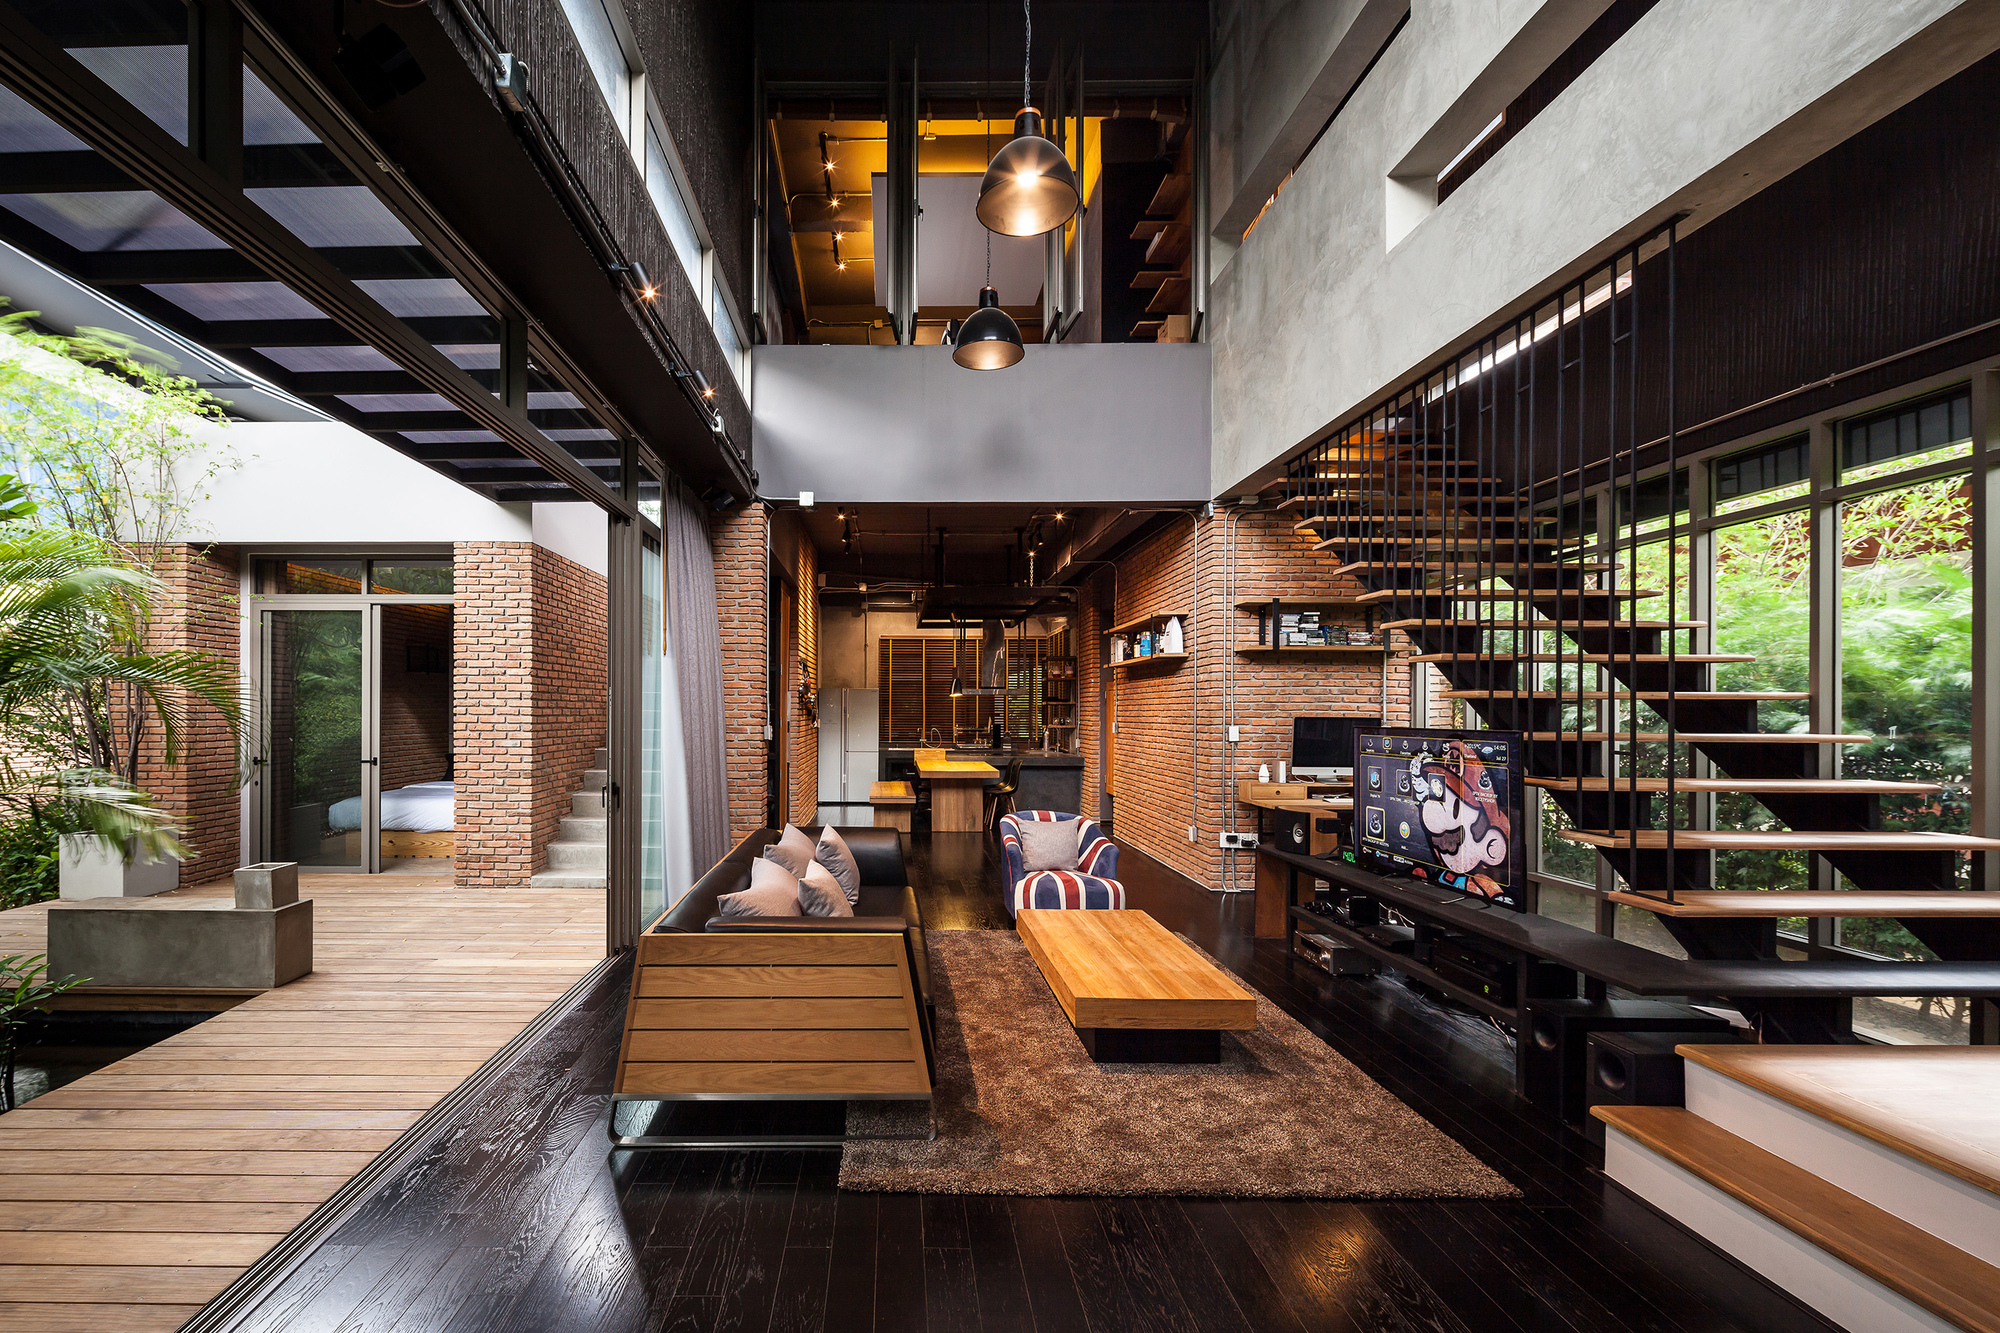 Two Houses at Nichada  Alkhemist Architects  ArchDaily